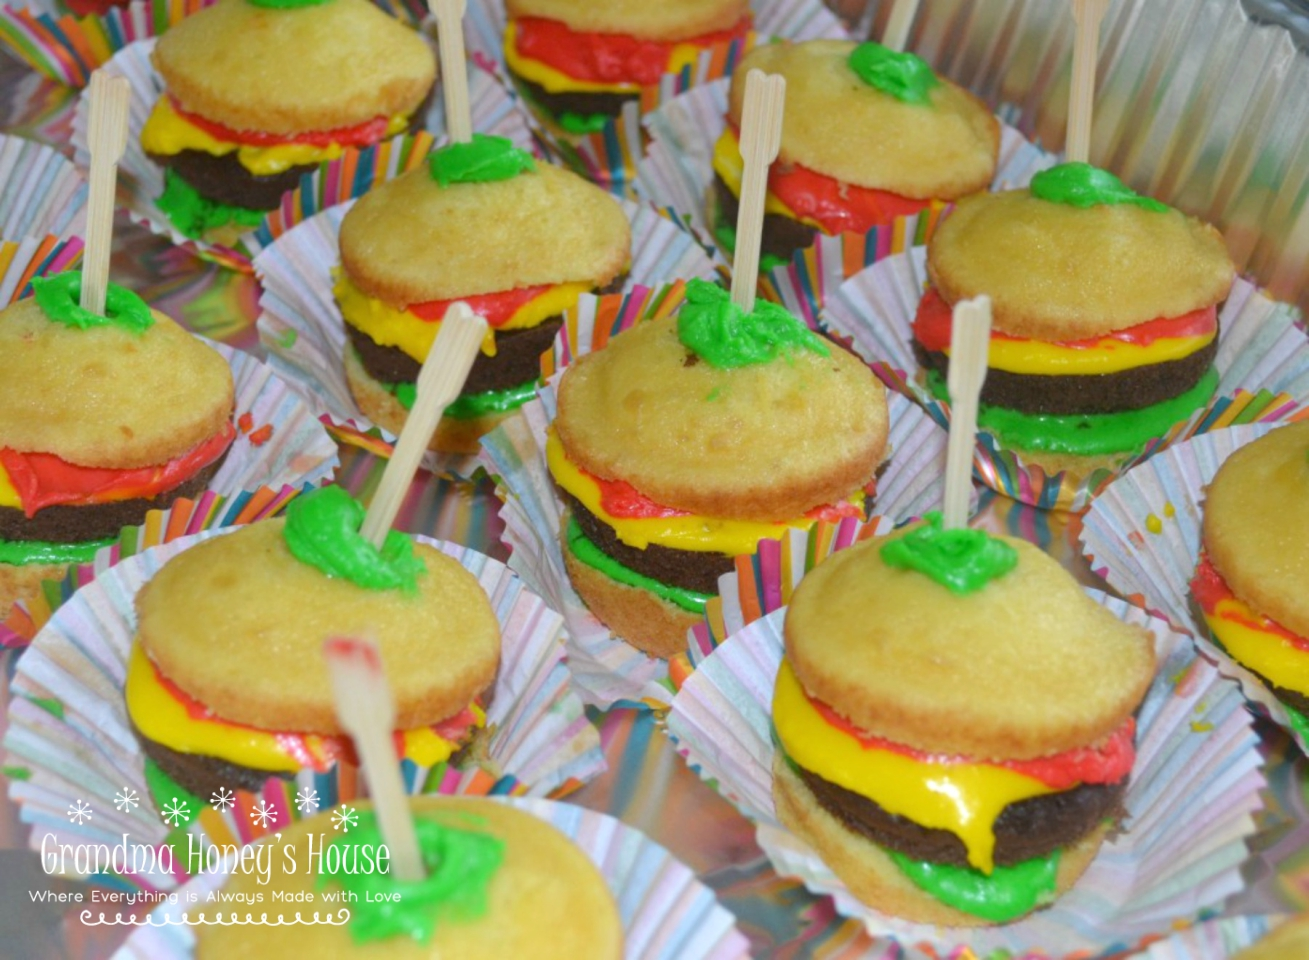 Cook-out cupcakes that look like mini cheeseburgers. Kids love them.